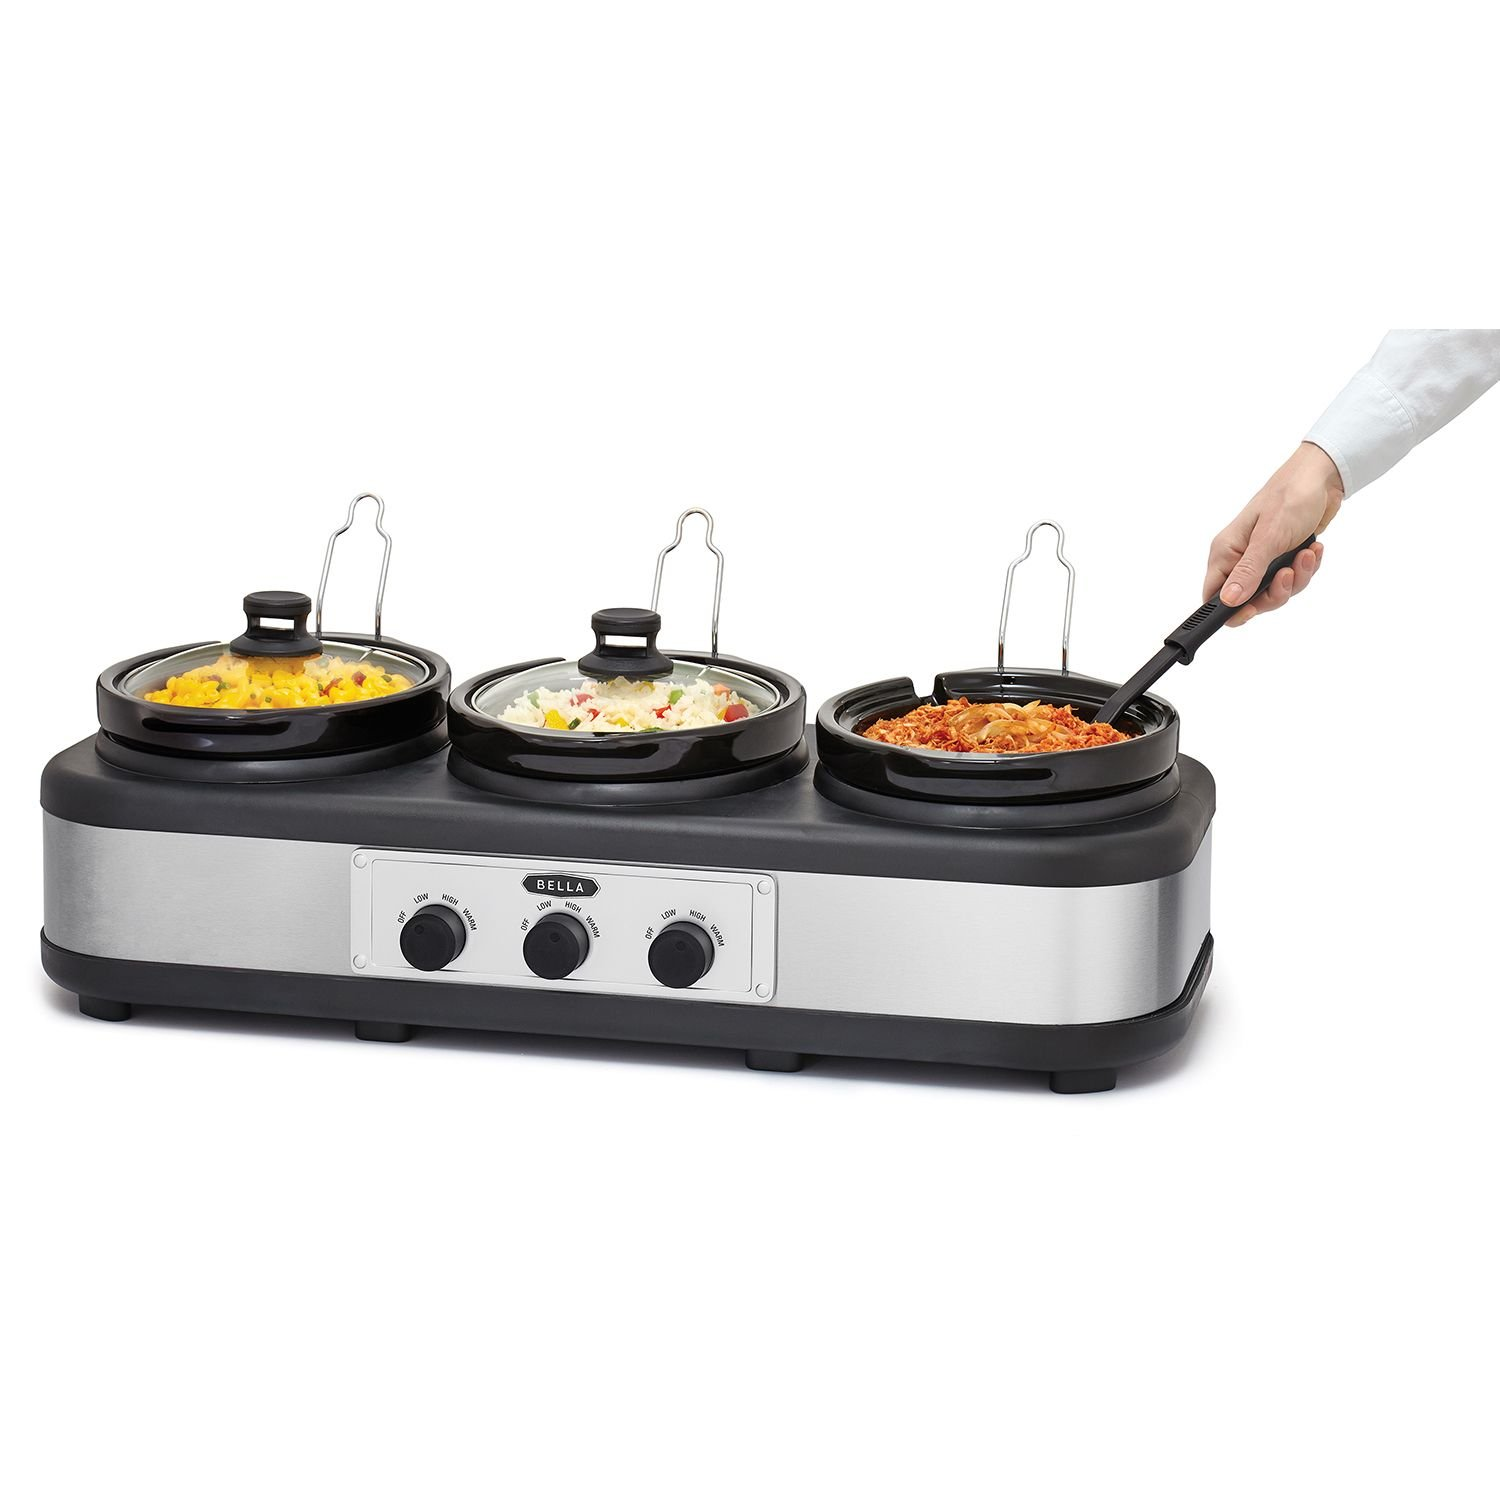 Bella triple Slow Cooker And Server With Lid Rests And Spoons 2.5 Qt Black/Stainless Steel